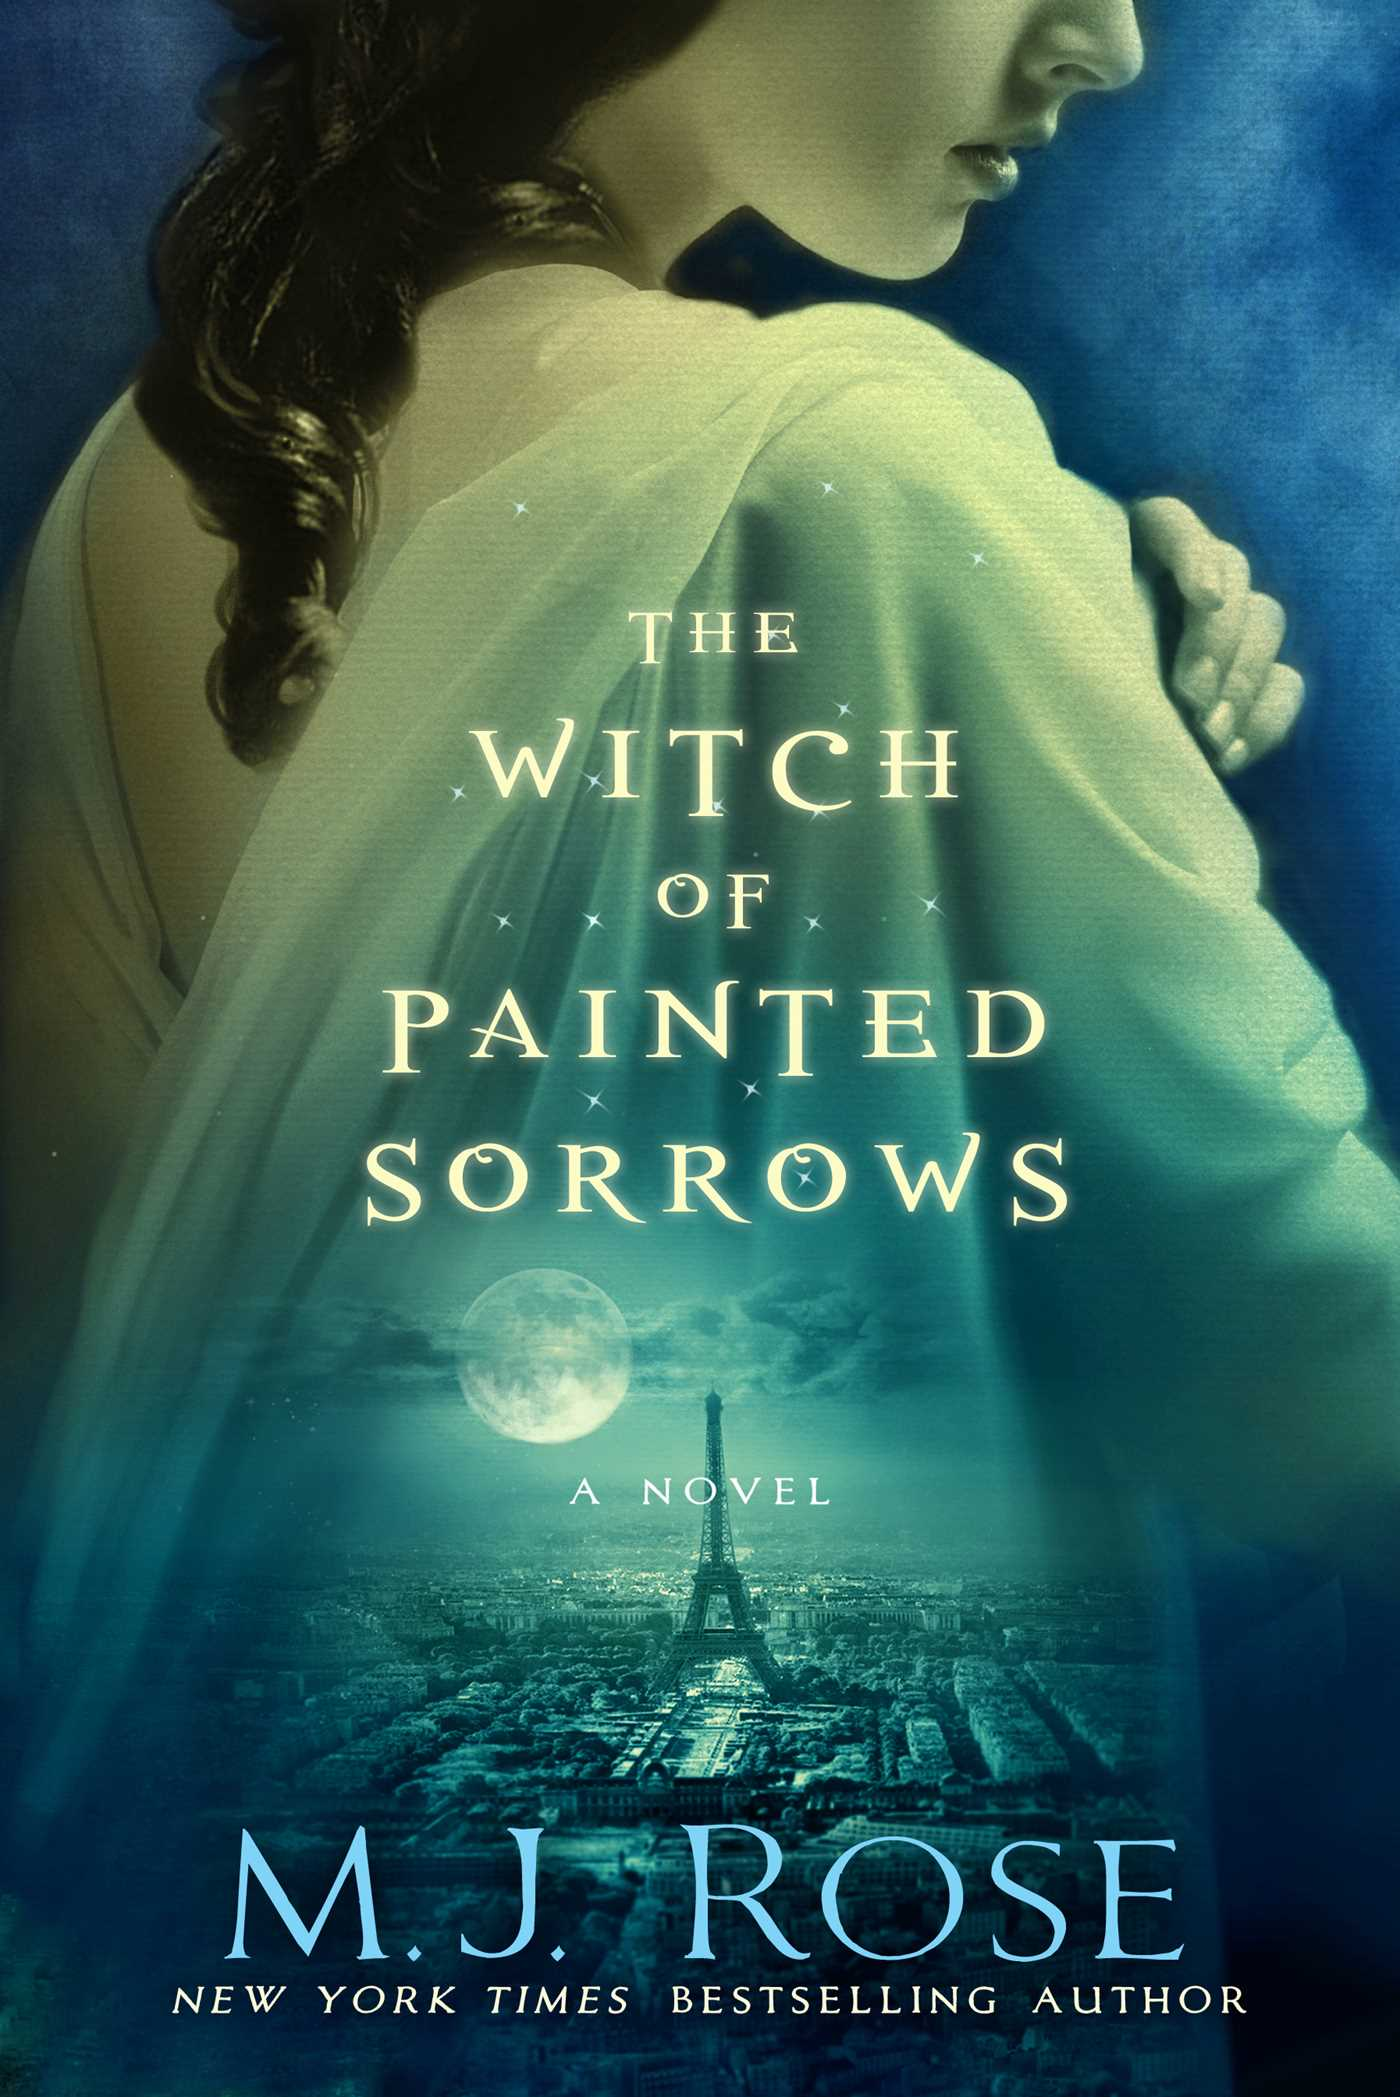 Witch-of-painted-sorrows-9781476778068_hr